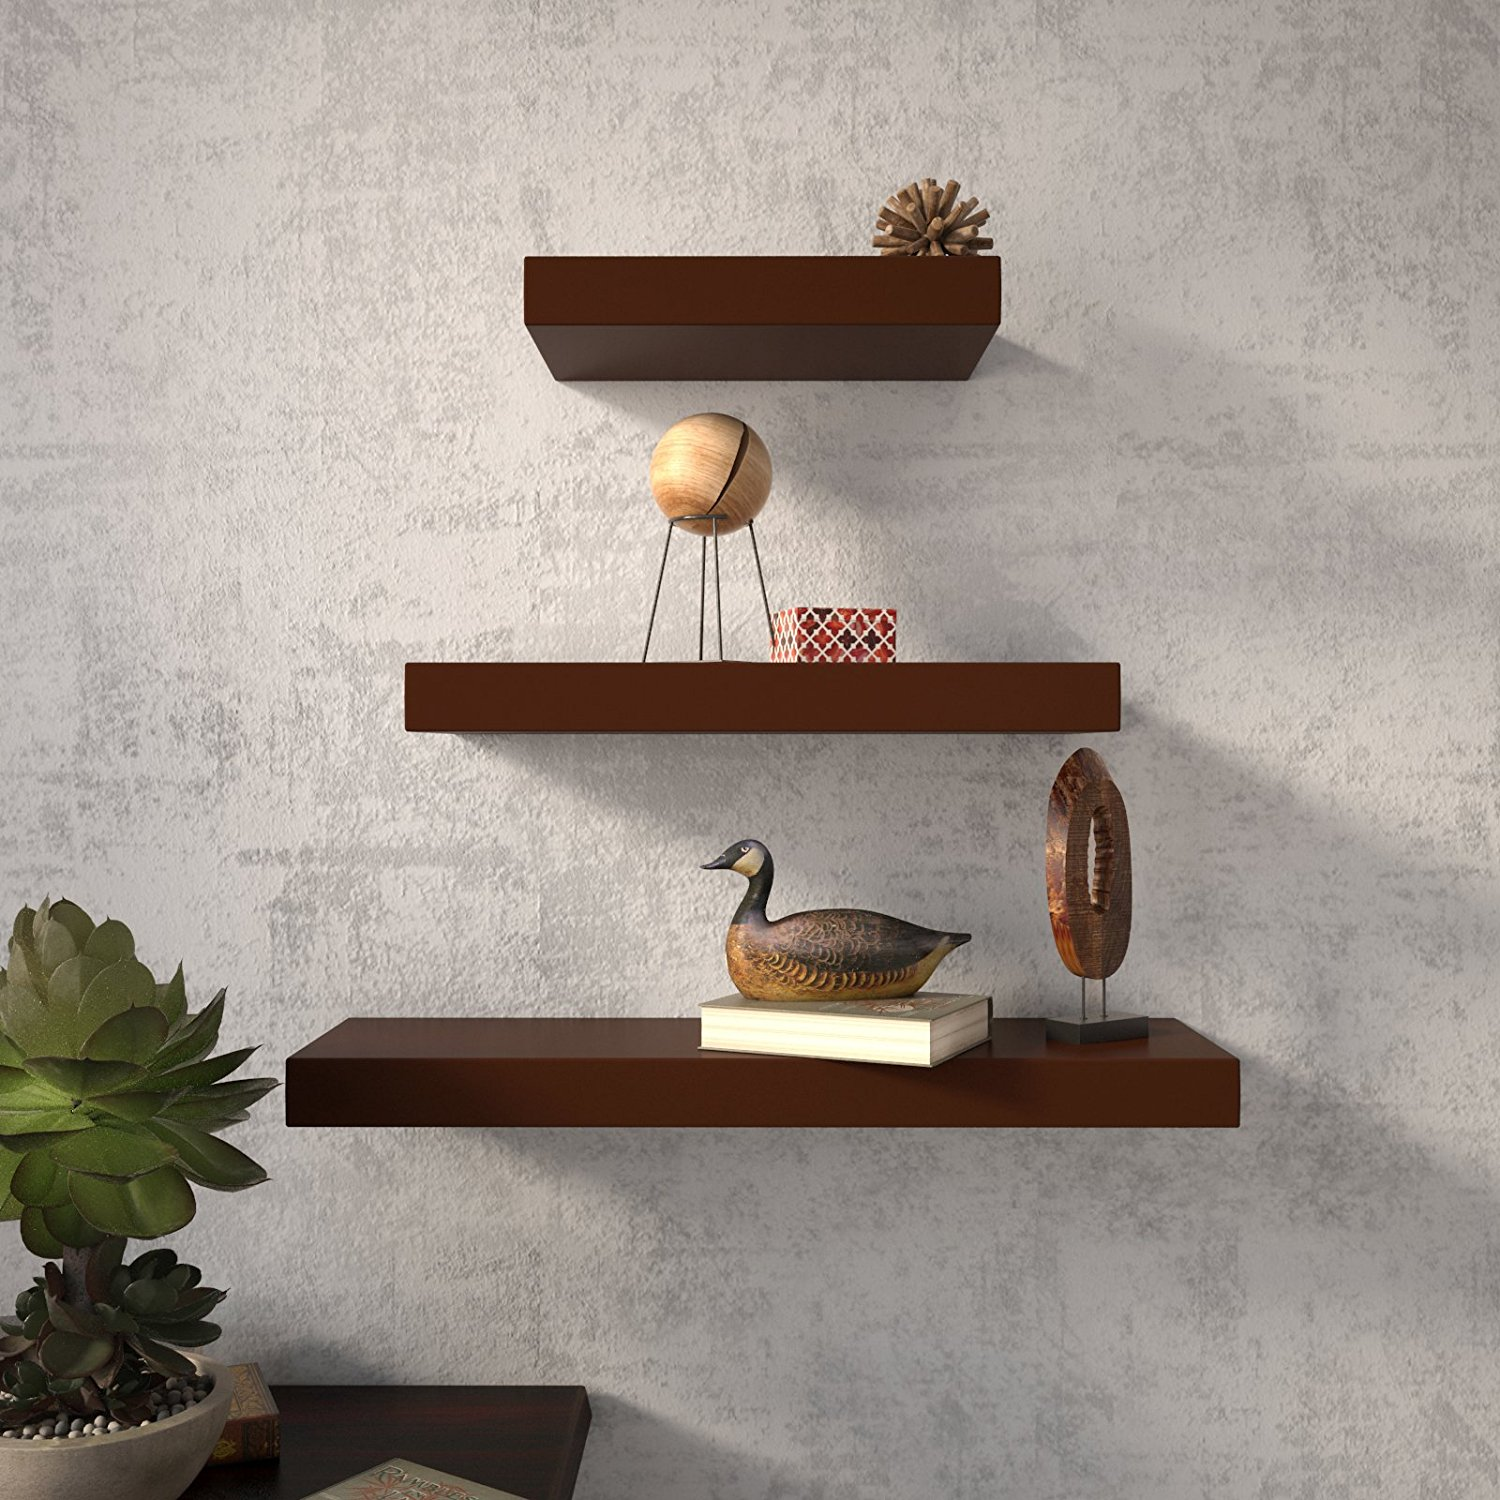 Set Of 3 (24x7in 18x7in 12x7in) Floating Wall Shelves For Storage & Display  - Brown